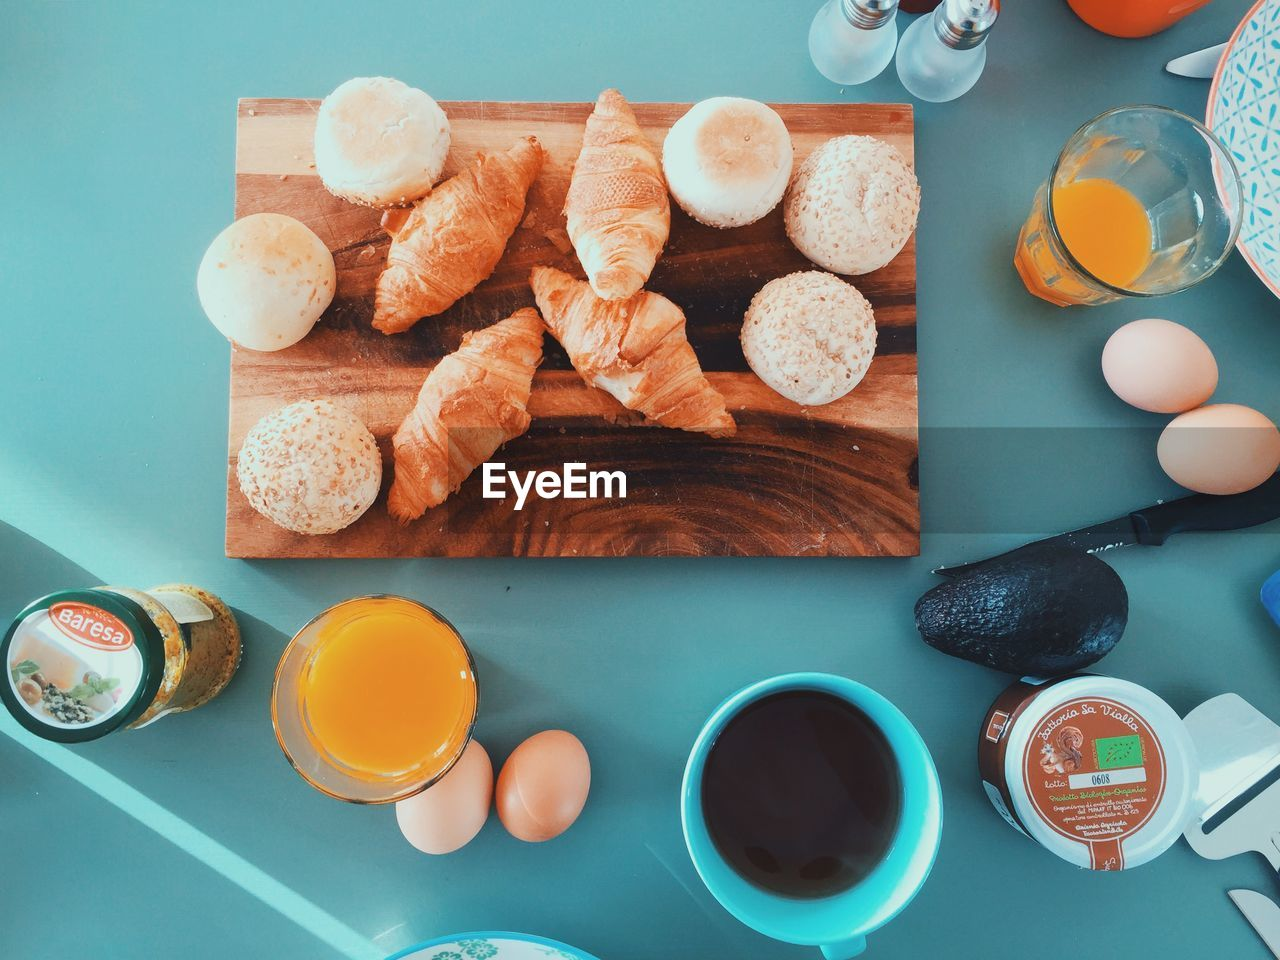 egg, table, food and drink, breakfast, food, bread, plate, indoors, healthy eating, bowl, directly above, cutting board, freshness, no people, drink, egg yolk, toasted bread, eggcup, orange juice, ready-to-eat, day